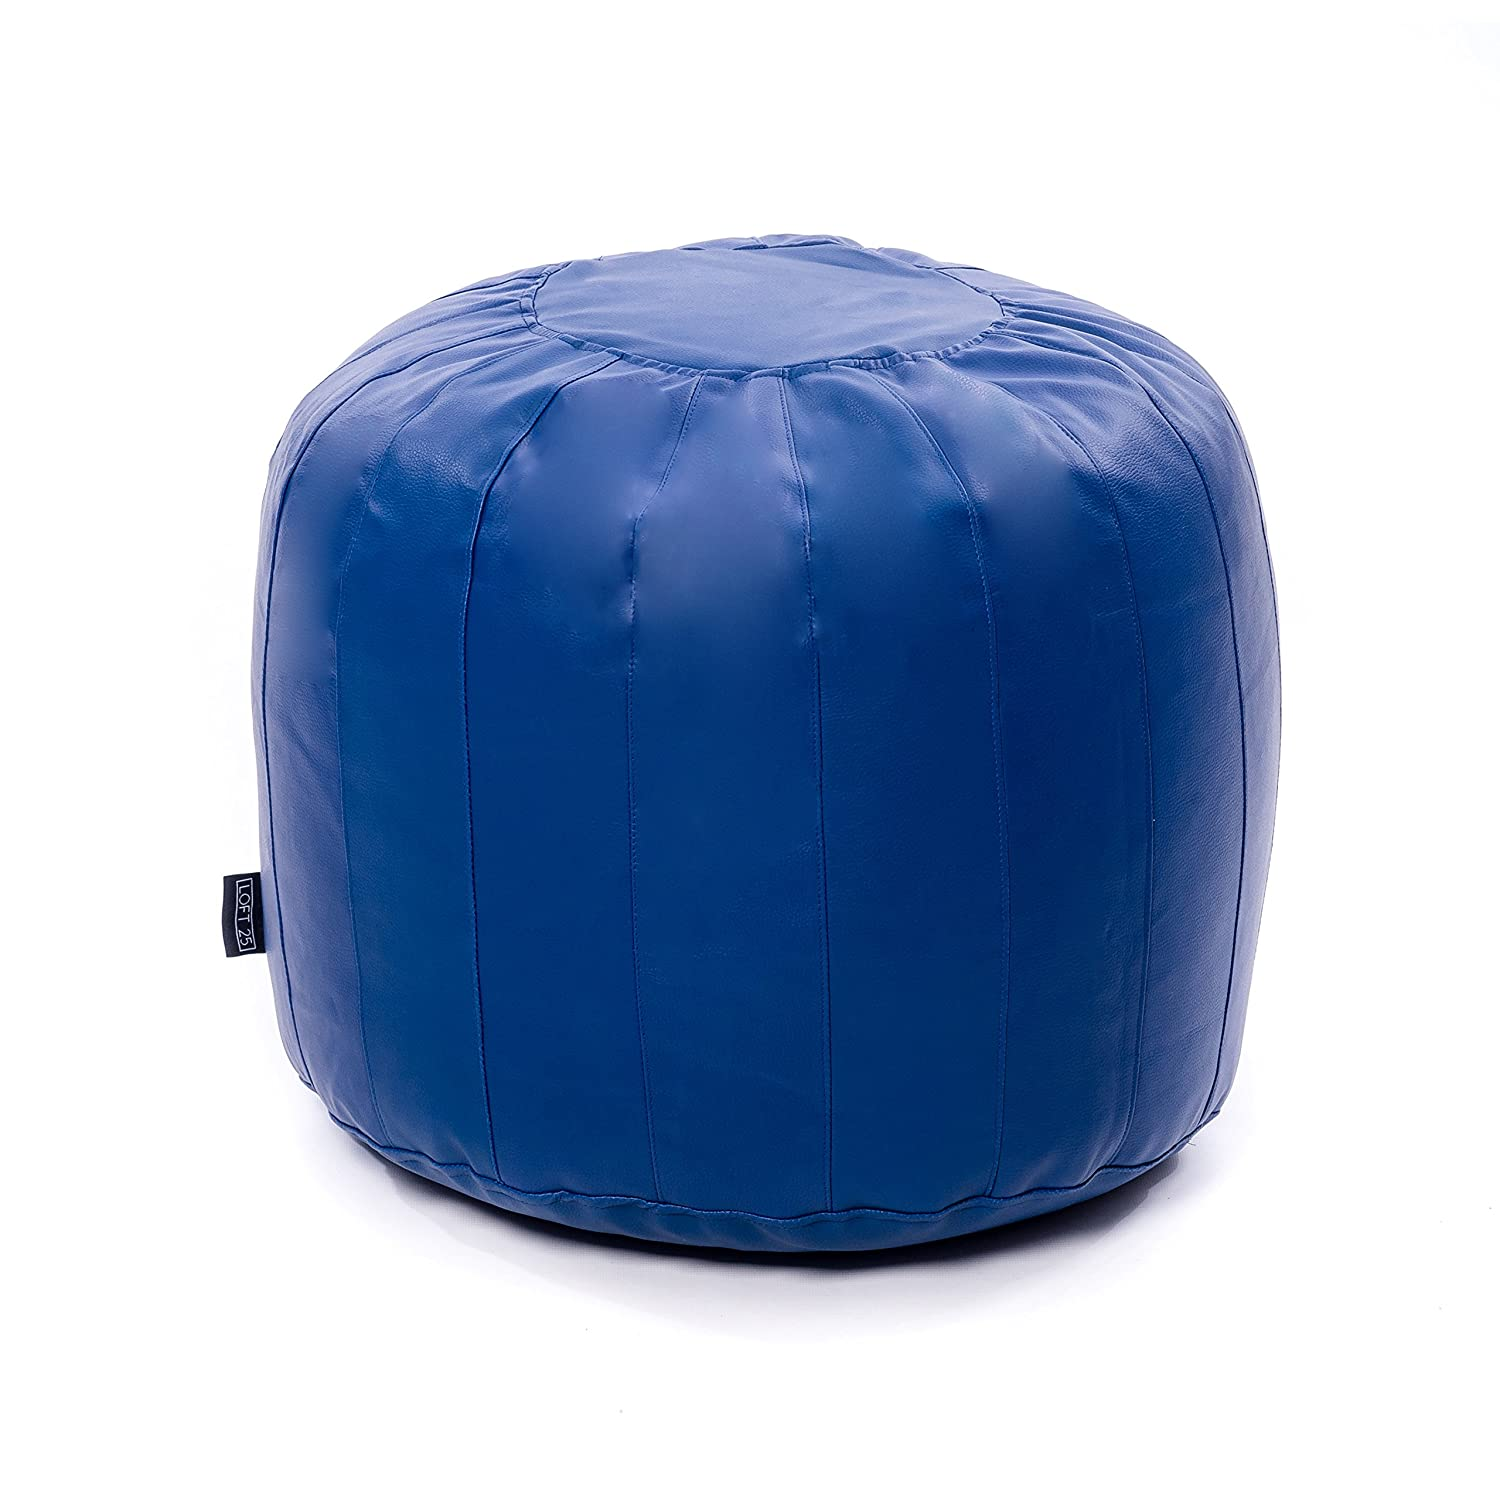 Shopisfy Moroccan Faux Leather Bean Bag Pouffe Footstool Seat - Royal Blue